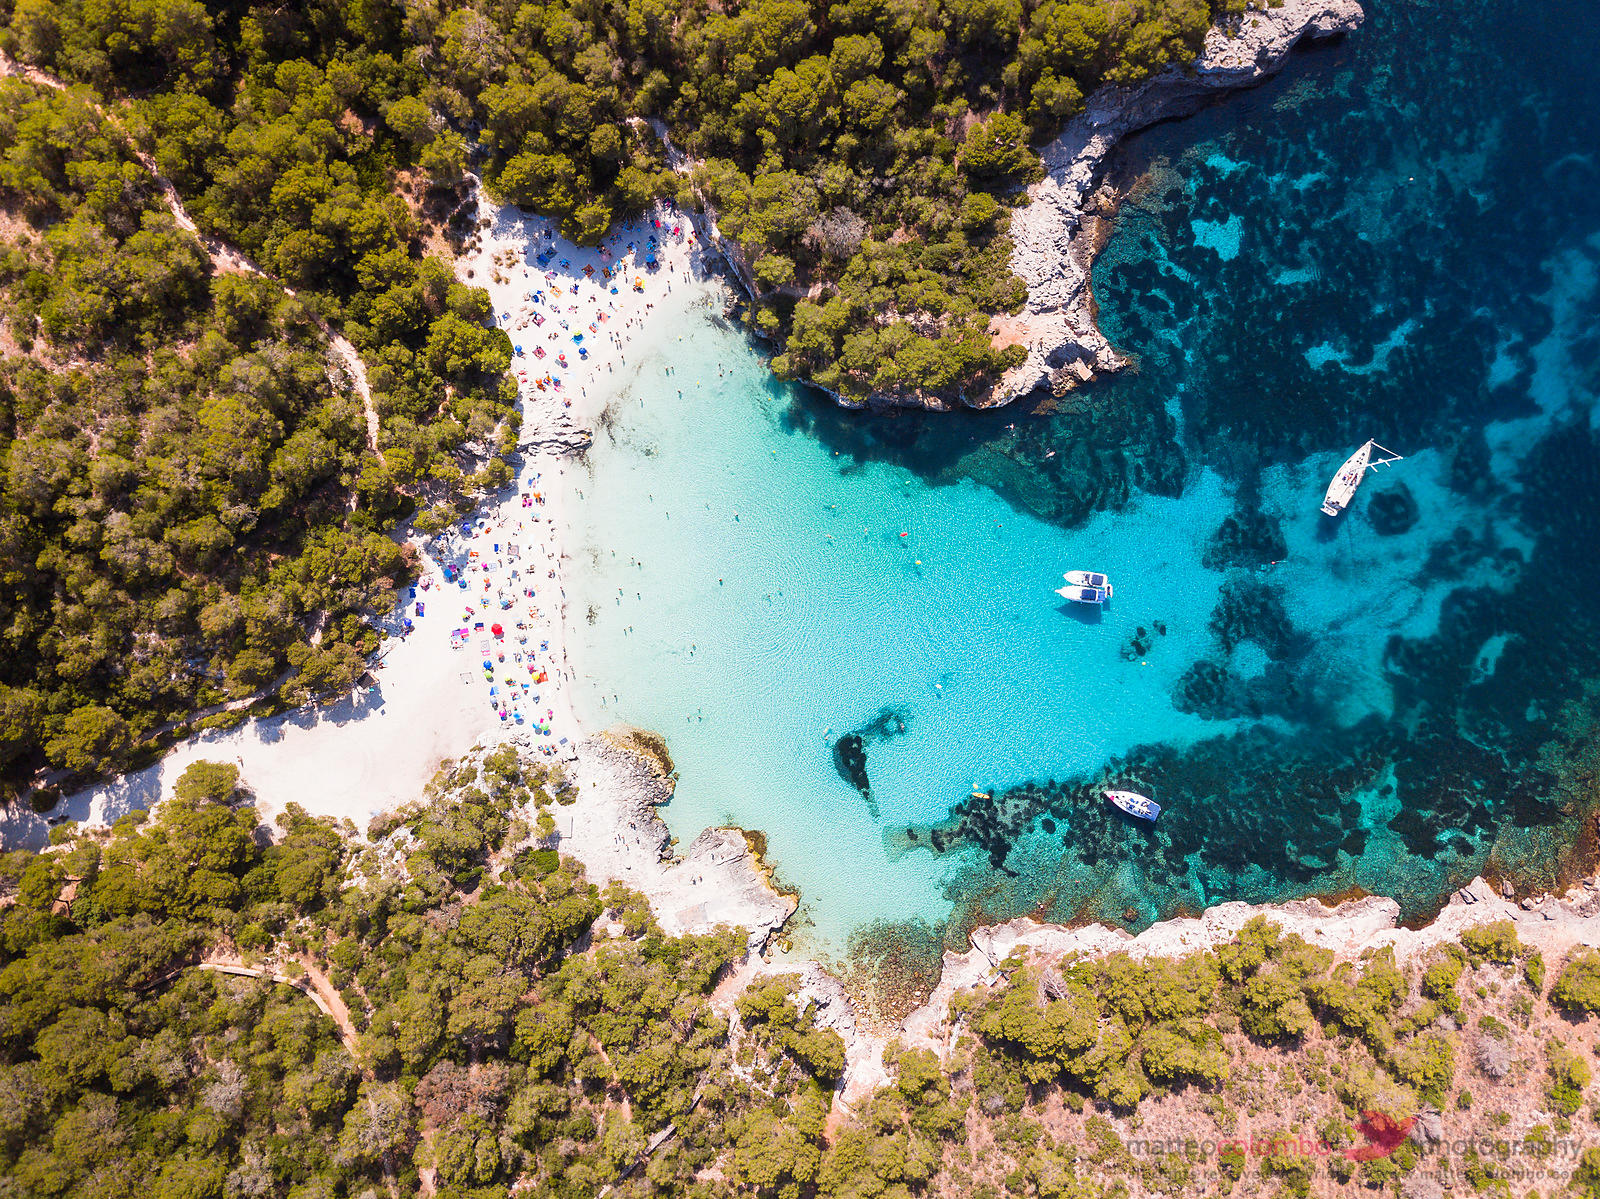 Overhead view of Cala Turqueta beach, Menorca